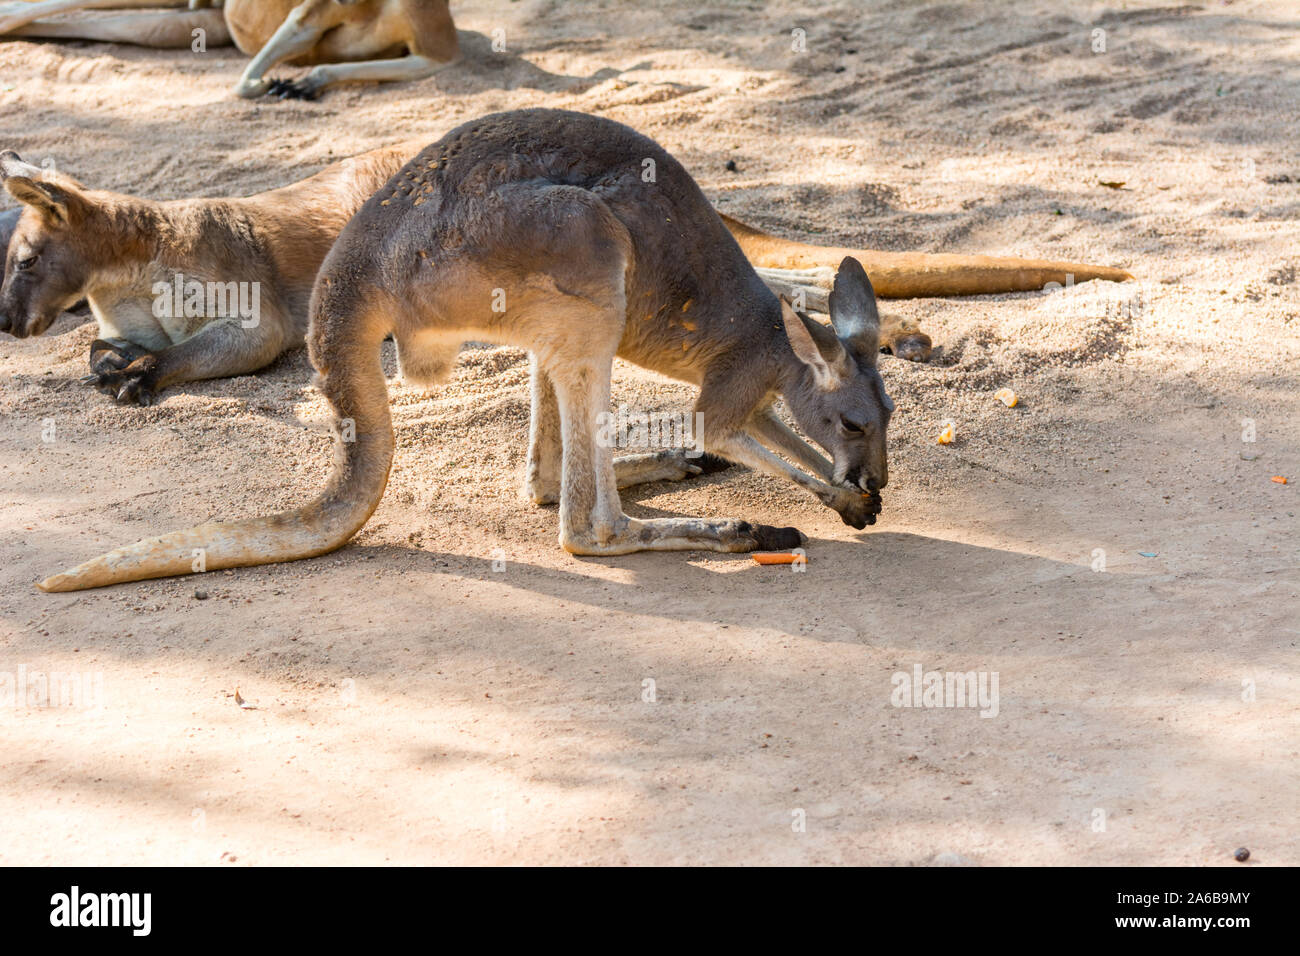 Kangaroo Eating Food In A Zoo A Leaping Mammal Of Australia And Nearby Islands That Feeds On Plants Stock Photo Alamy